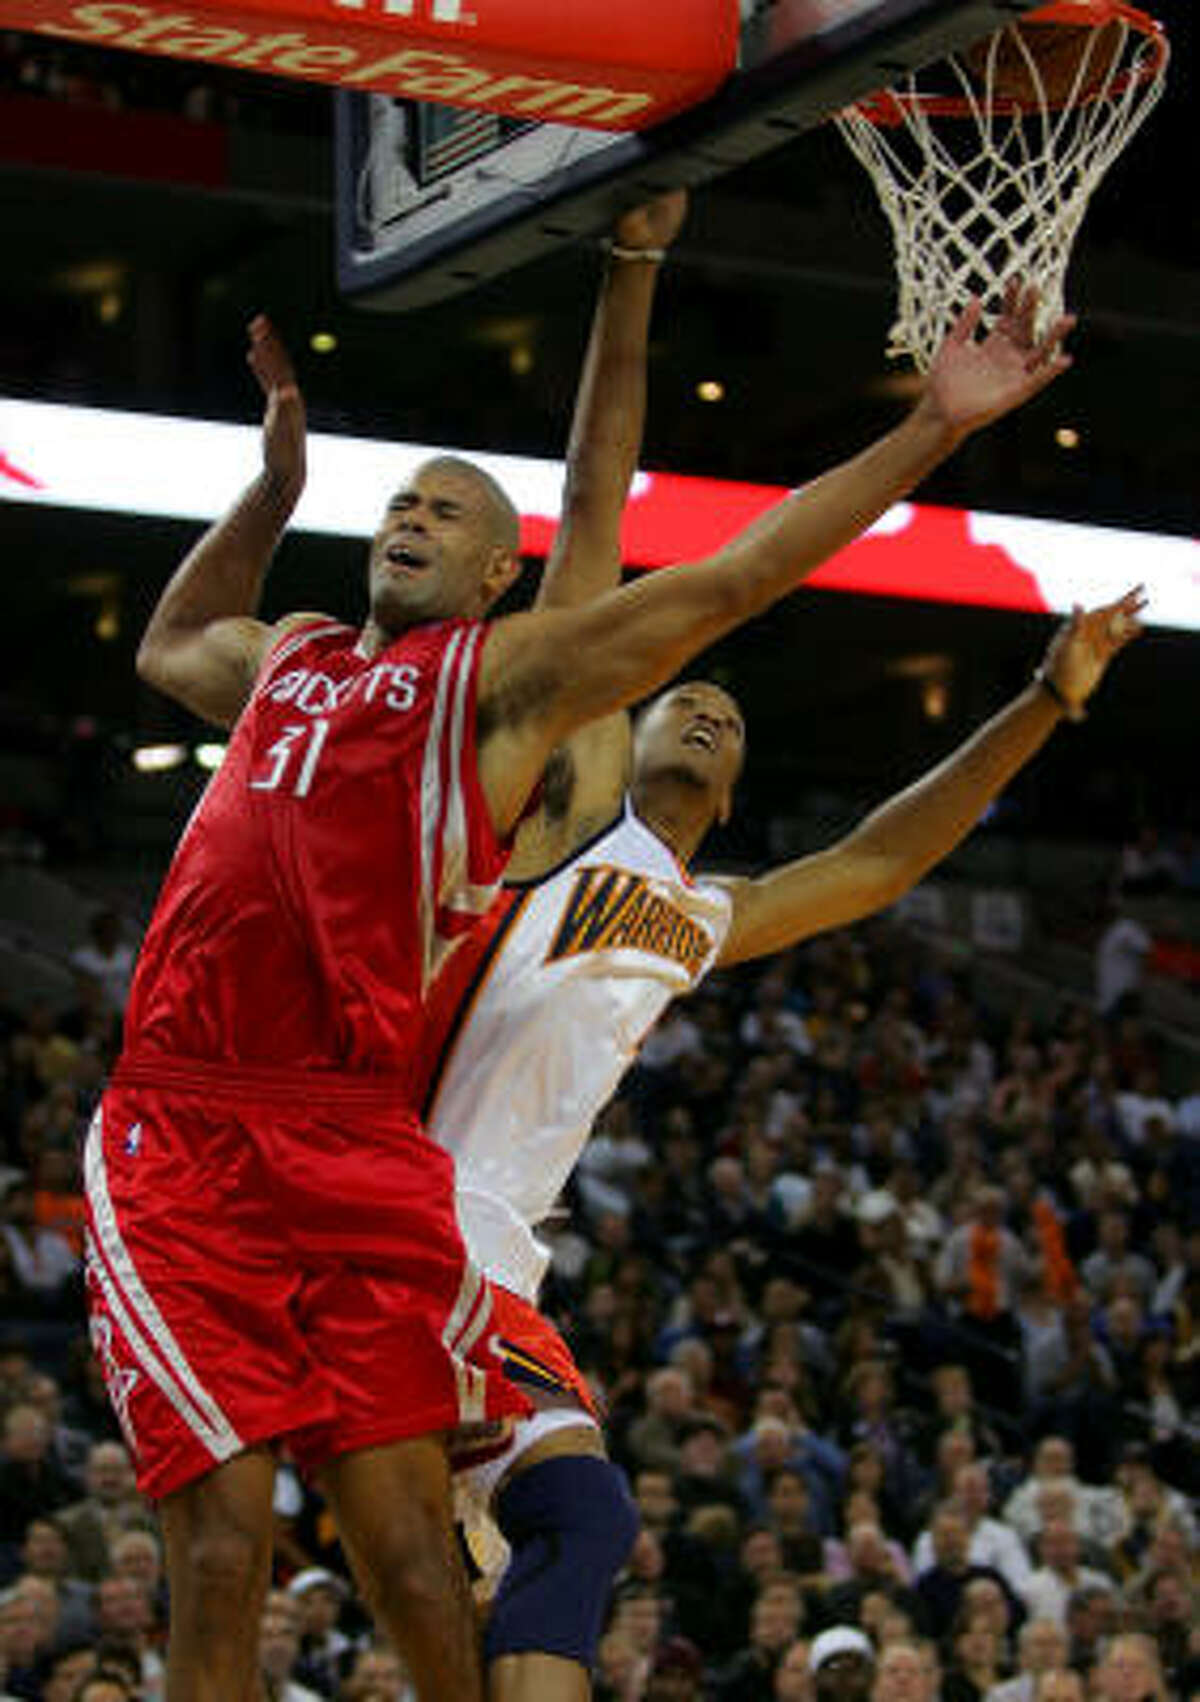 Shane Battier, left, is fouled by Anthony Randolph as Battier goes up for a lay-up. Battier knocked down all six of his free throws on the night and scored nine points.